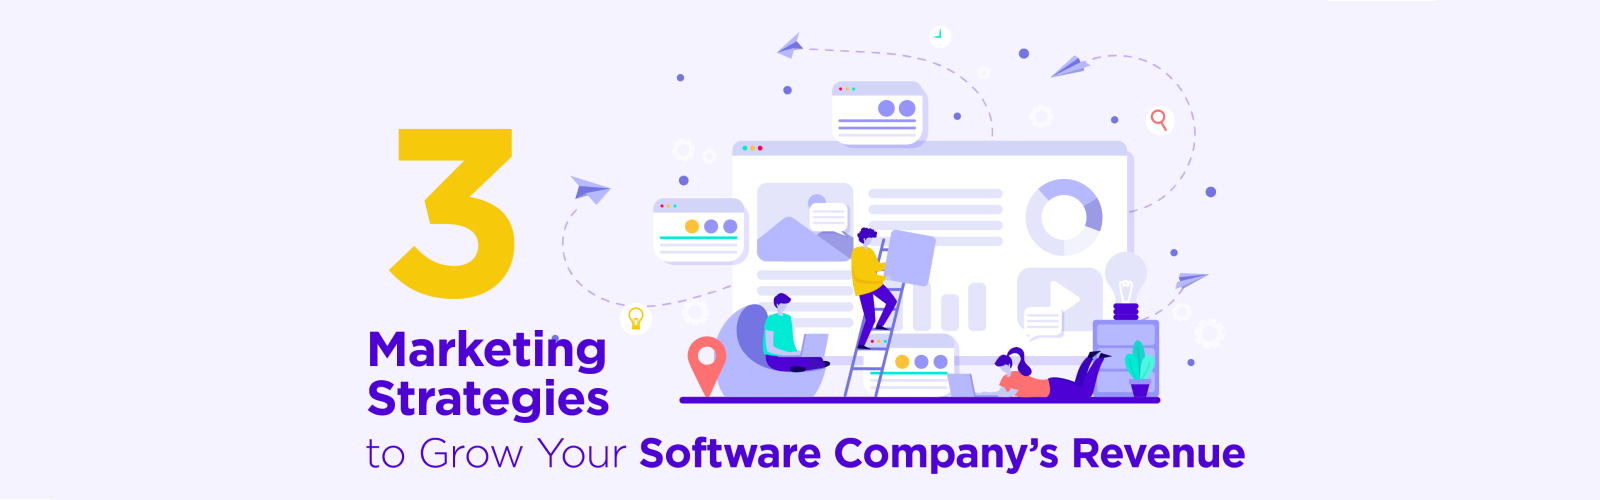 3 Marketing Strategies to Grow Your Software Company's Revenue in 2020-Infographic-Banner.jpg